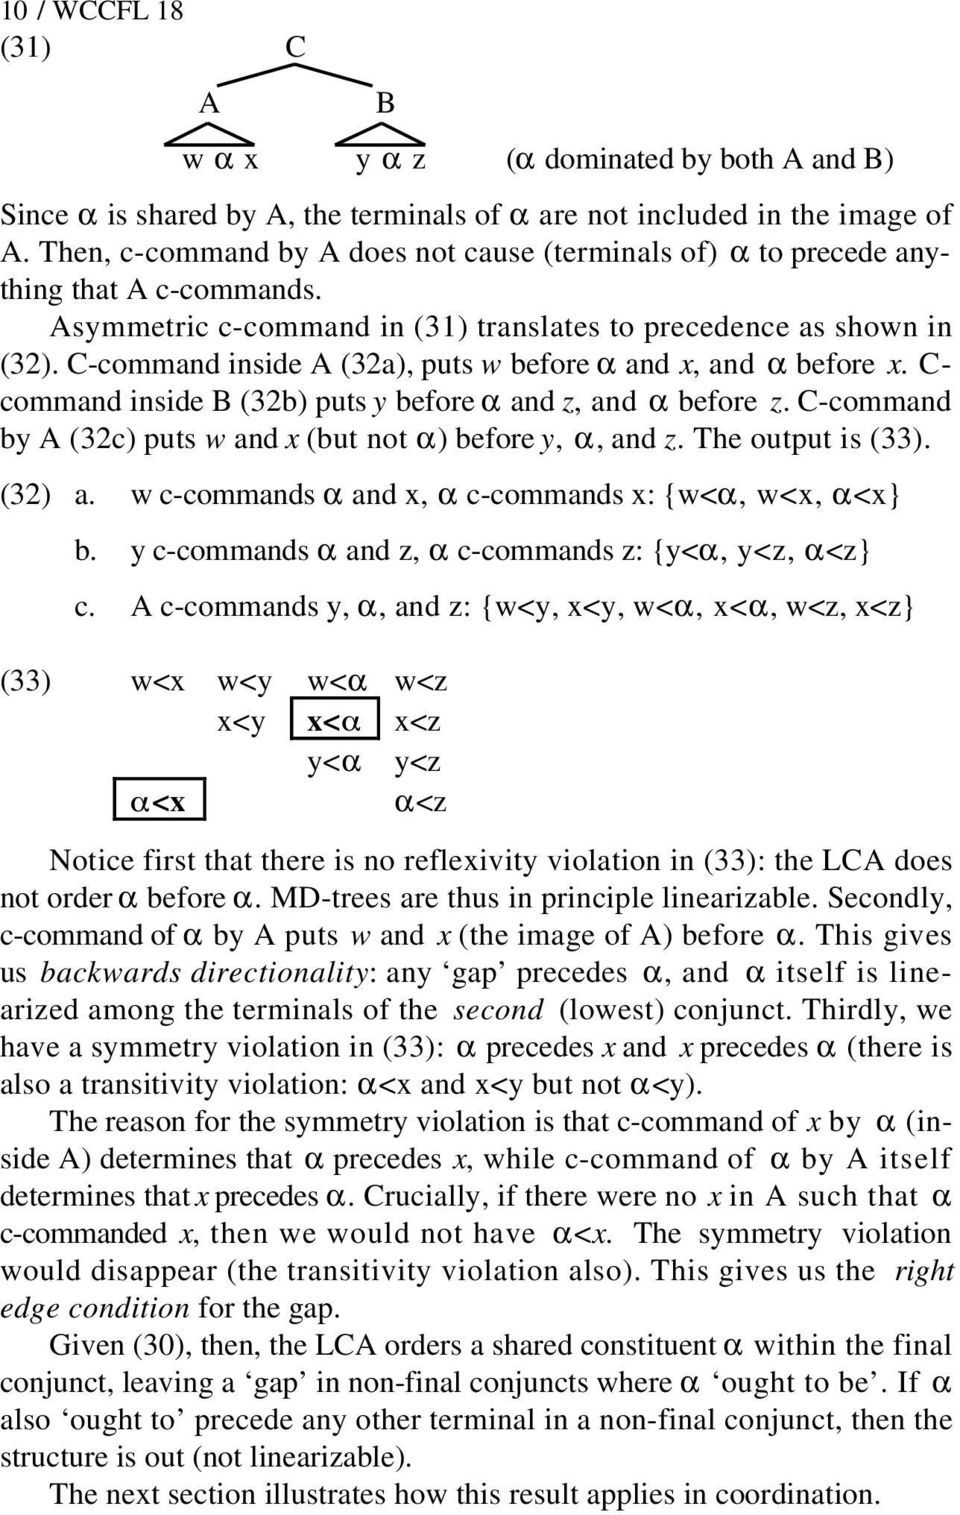 C-command inside A (32a), puts w before α and x, and α before x. C- command inside B (32b) puts y before α and z, and α before z. C-command by A (32c) puts w and x (but not α) before y, α, and z.